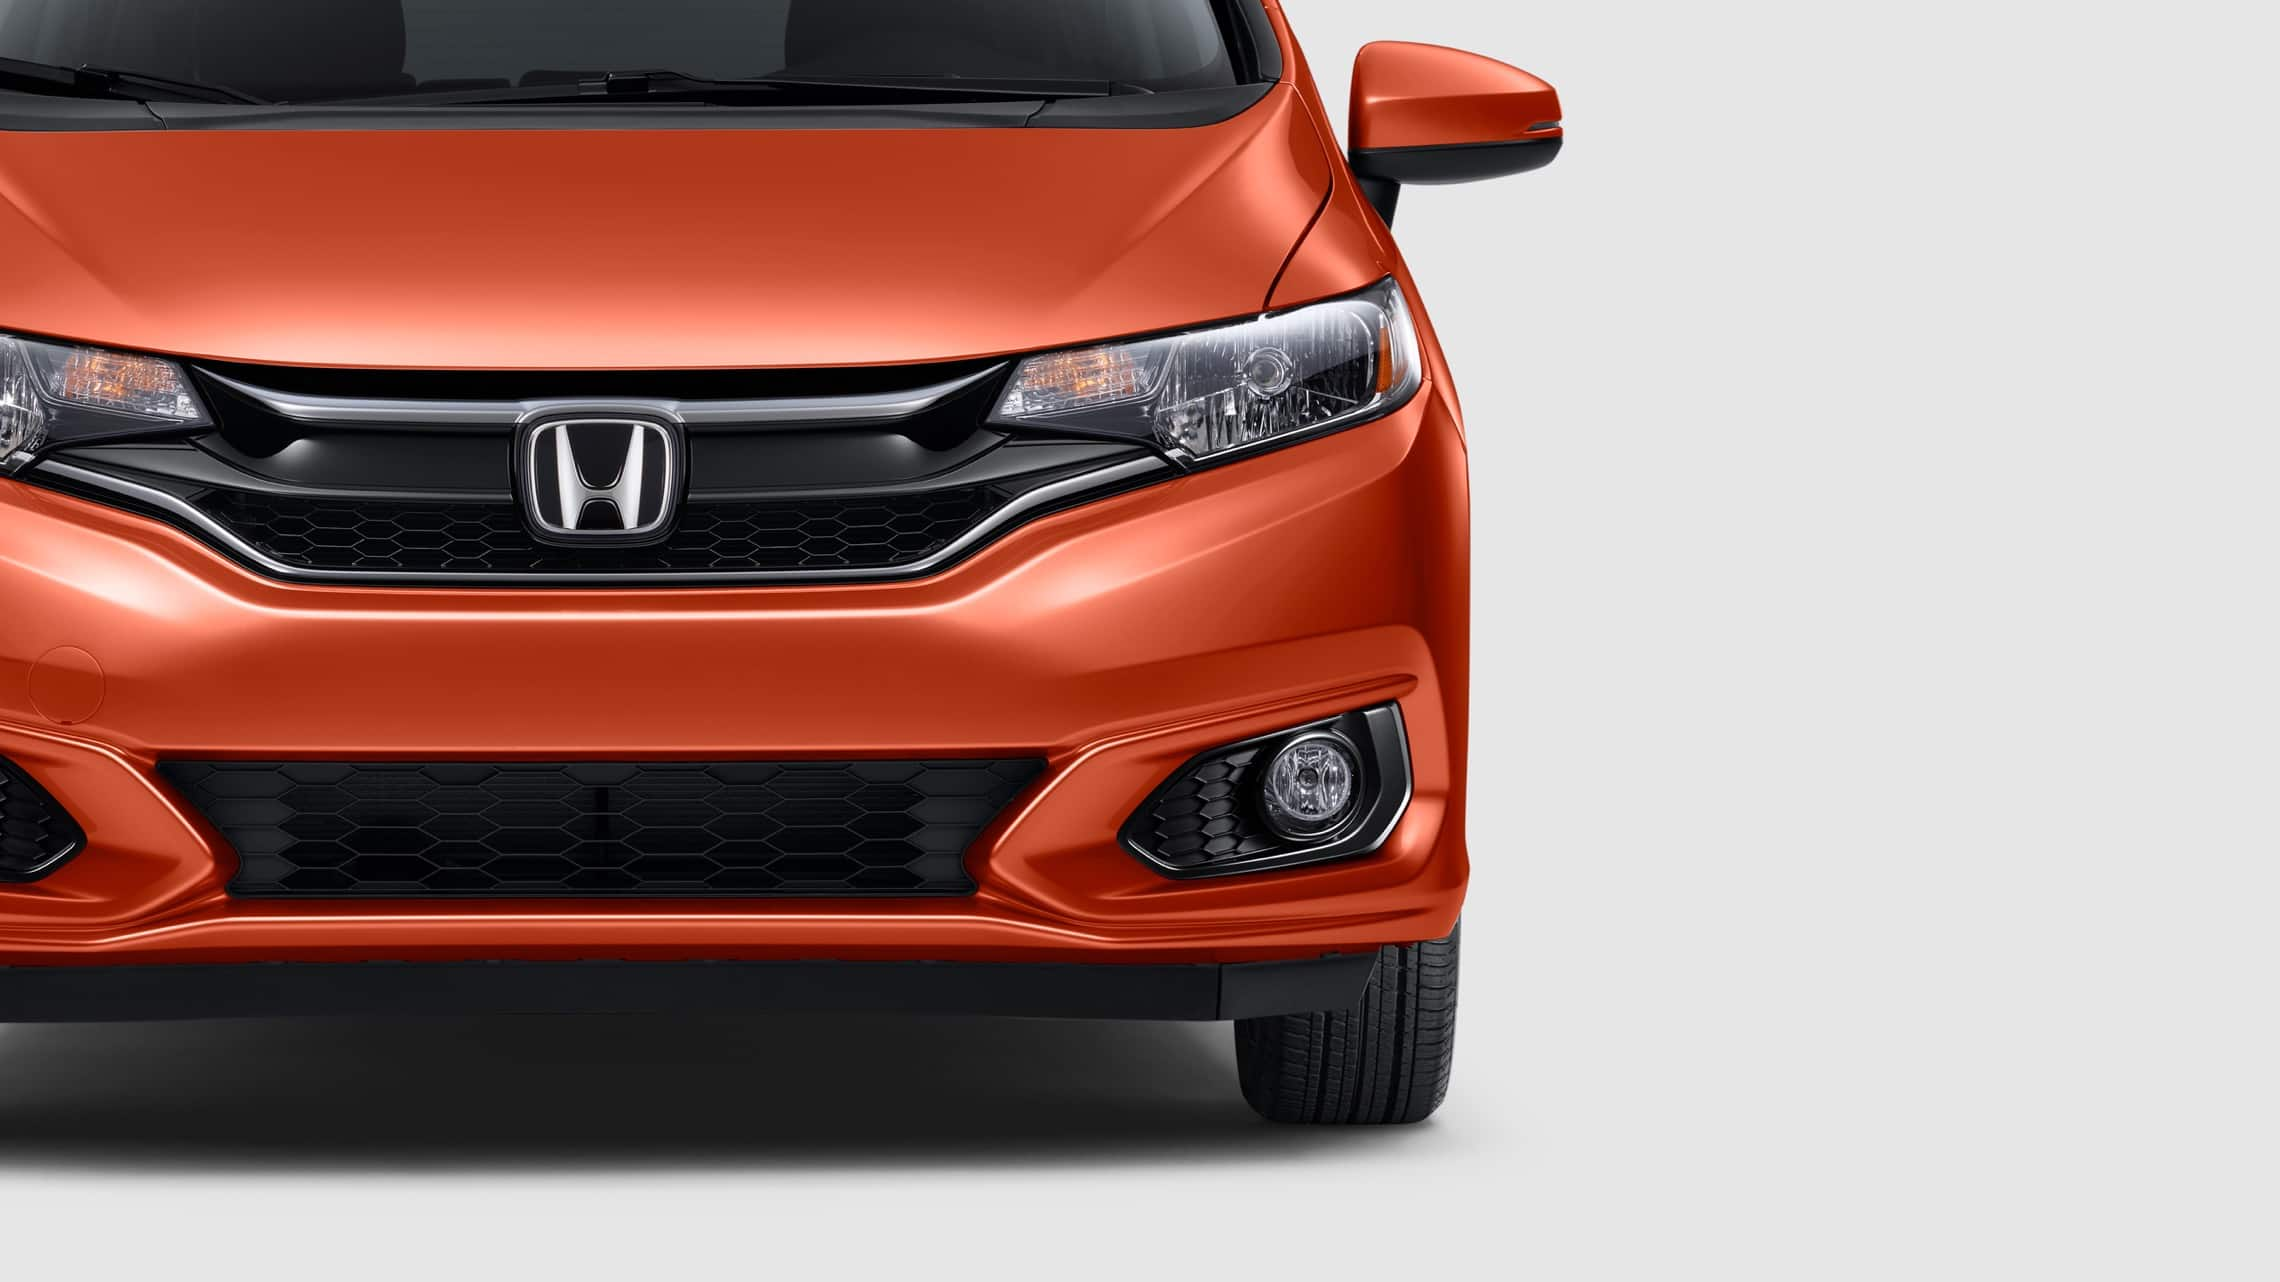 Vista exterior frontal del Honda Fit EX-L 2020 en Orange Fury.